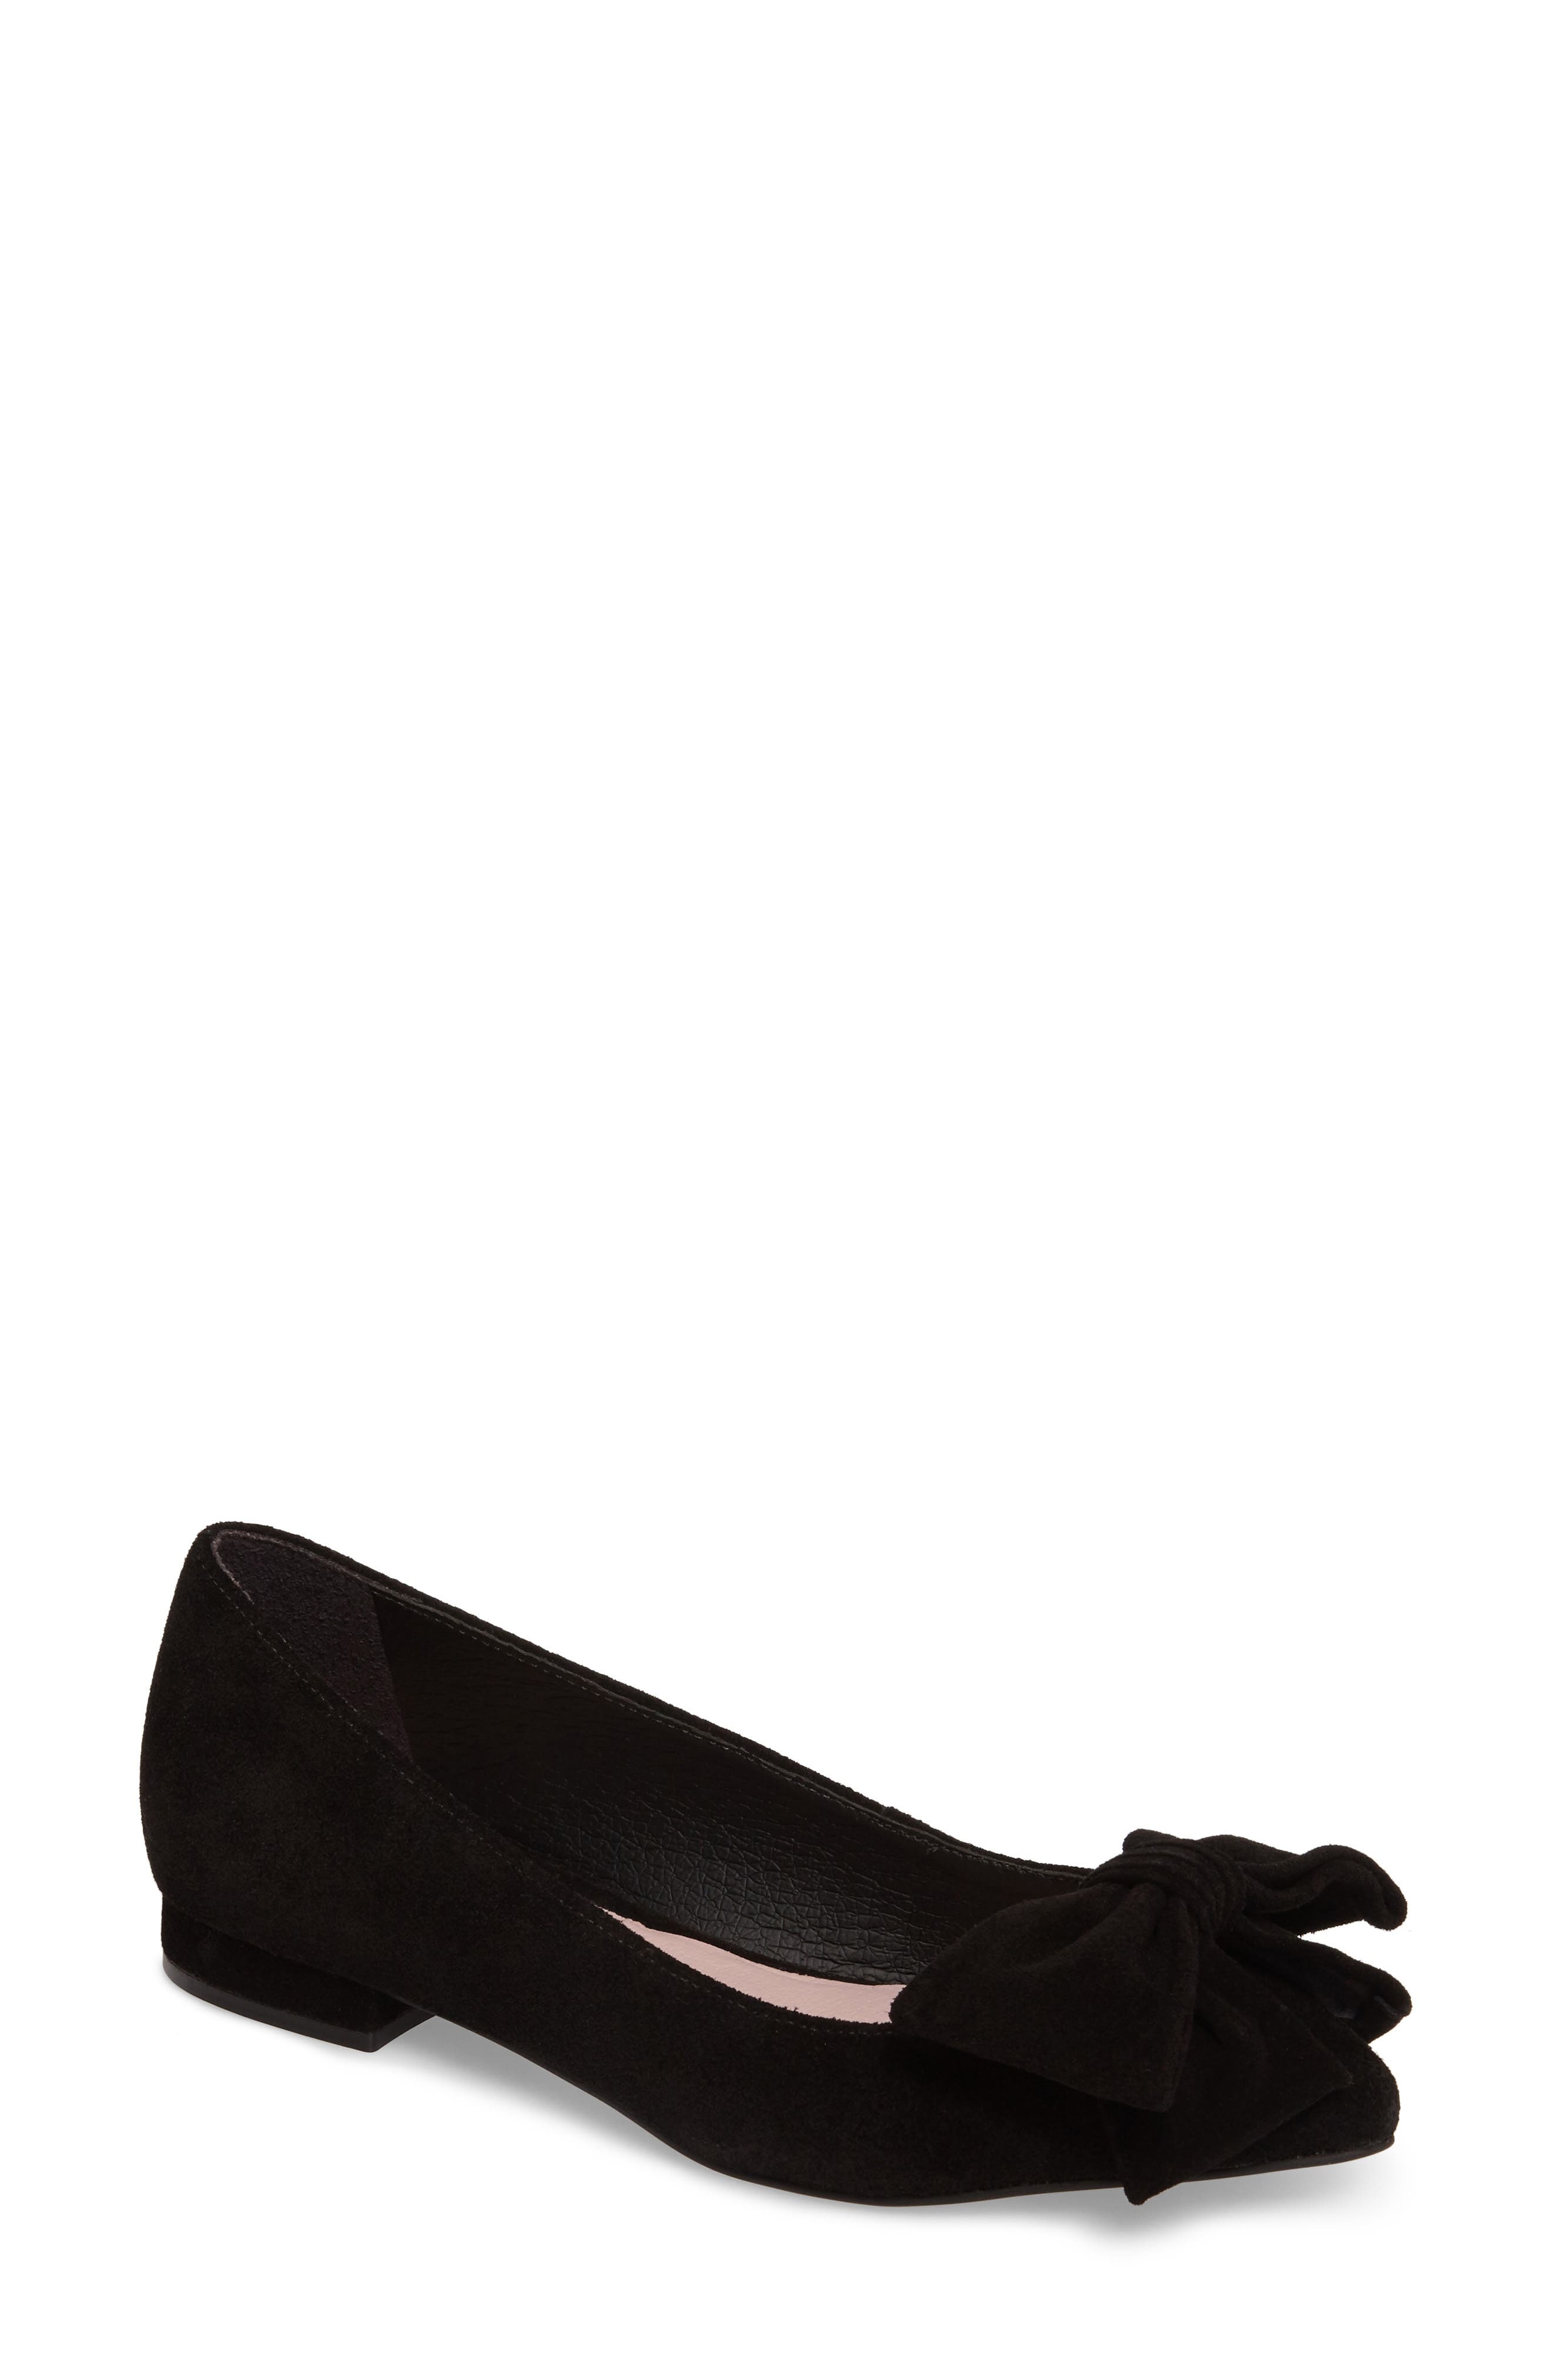 Delsie Flat,                         Main,                         color, Black